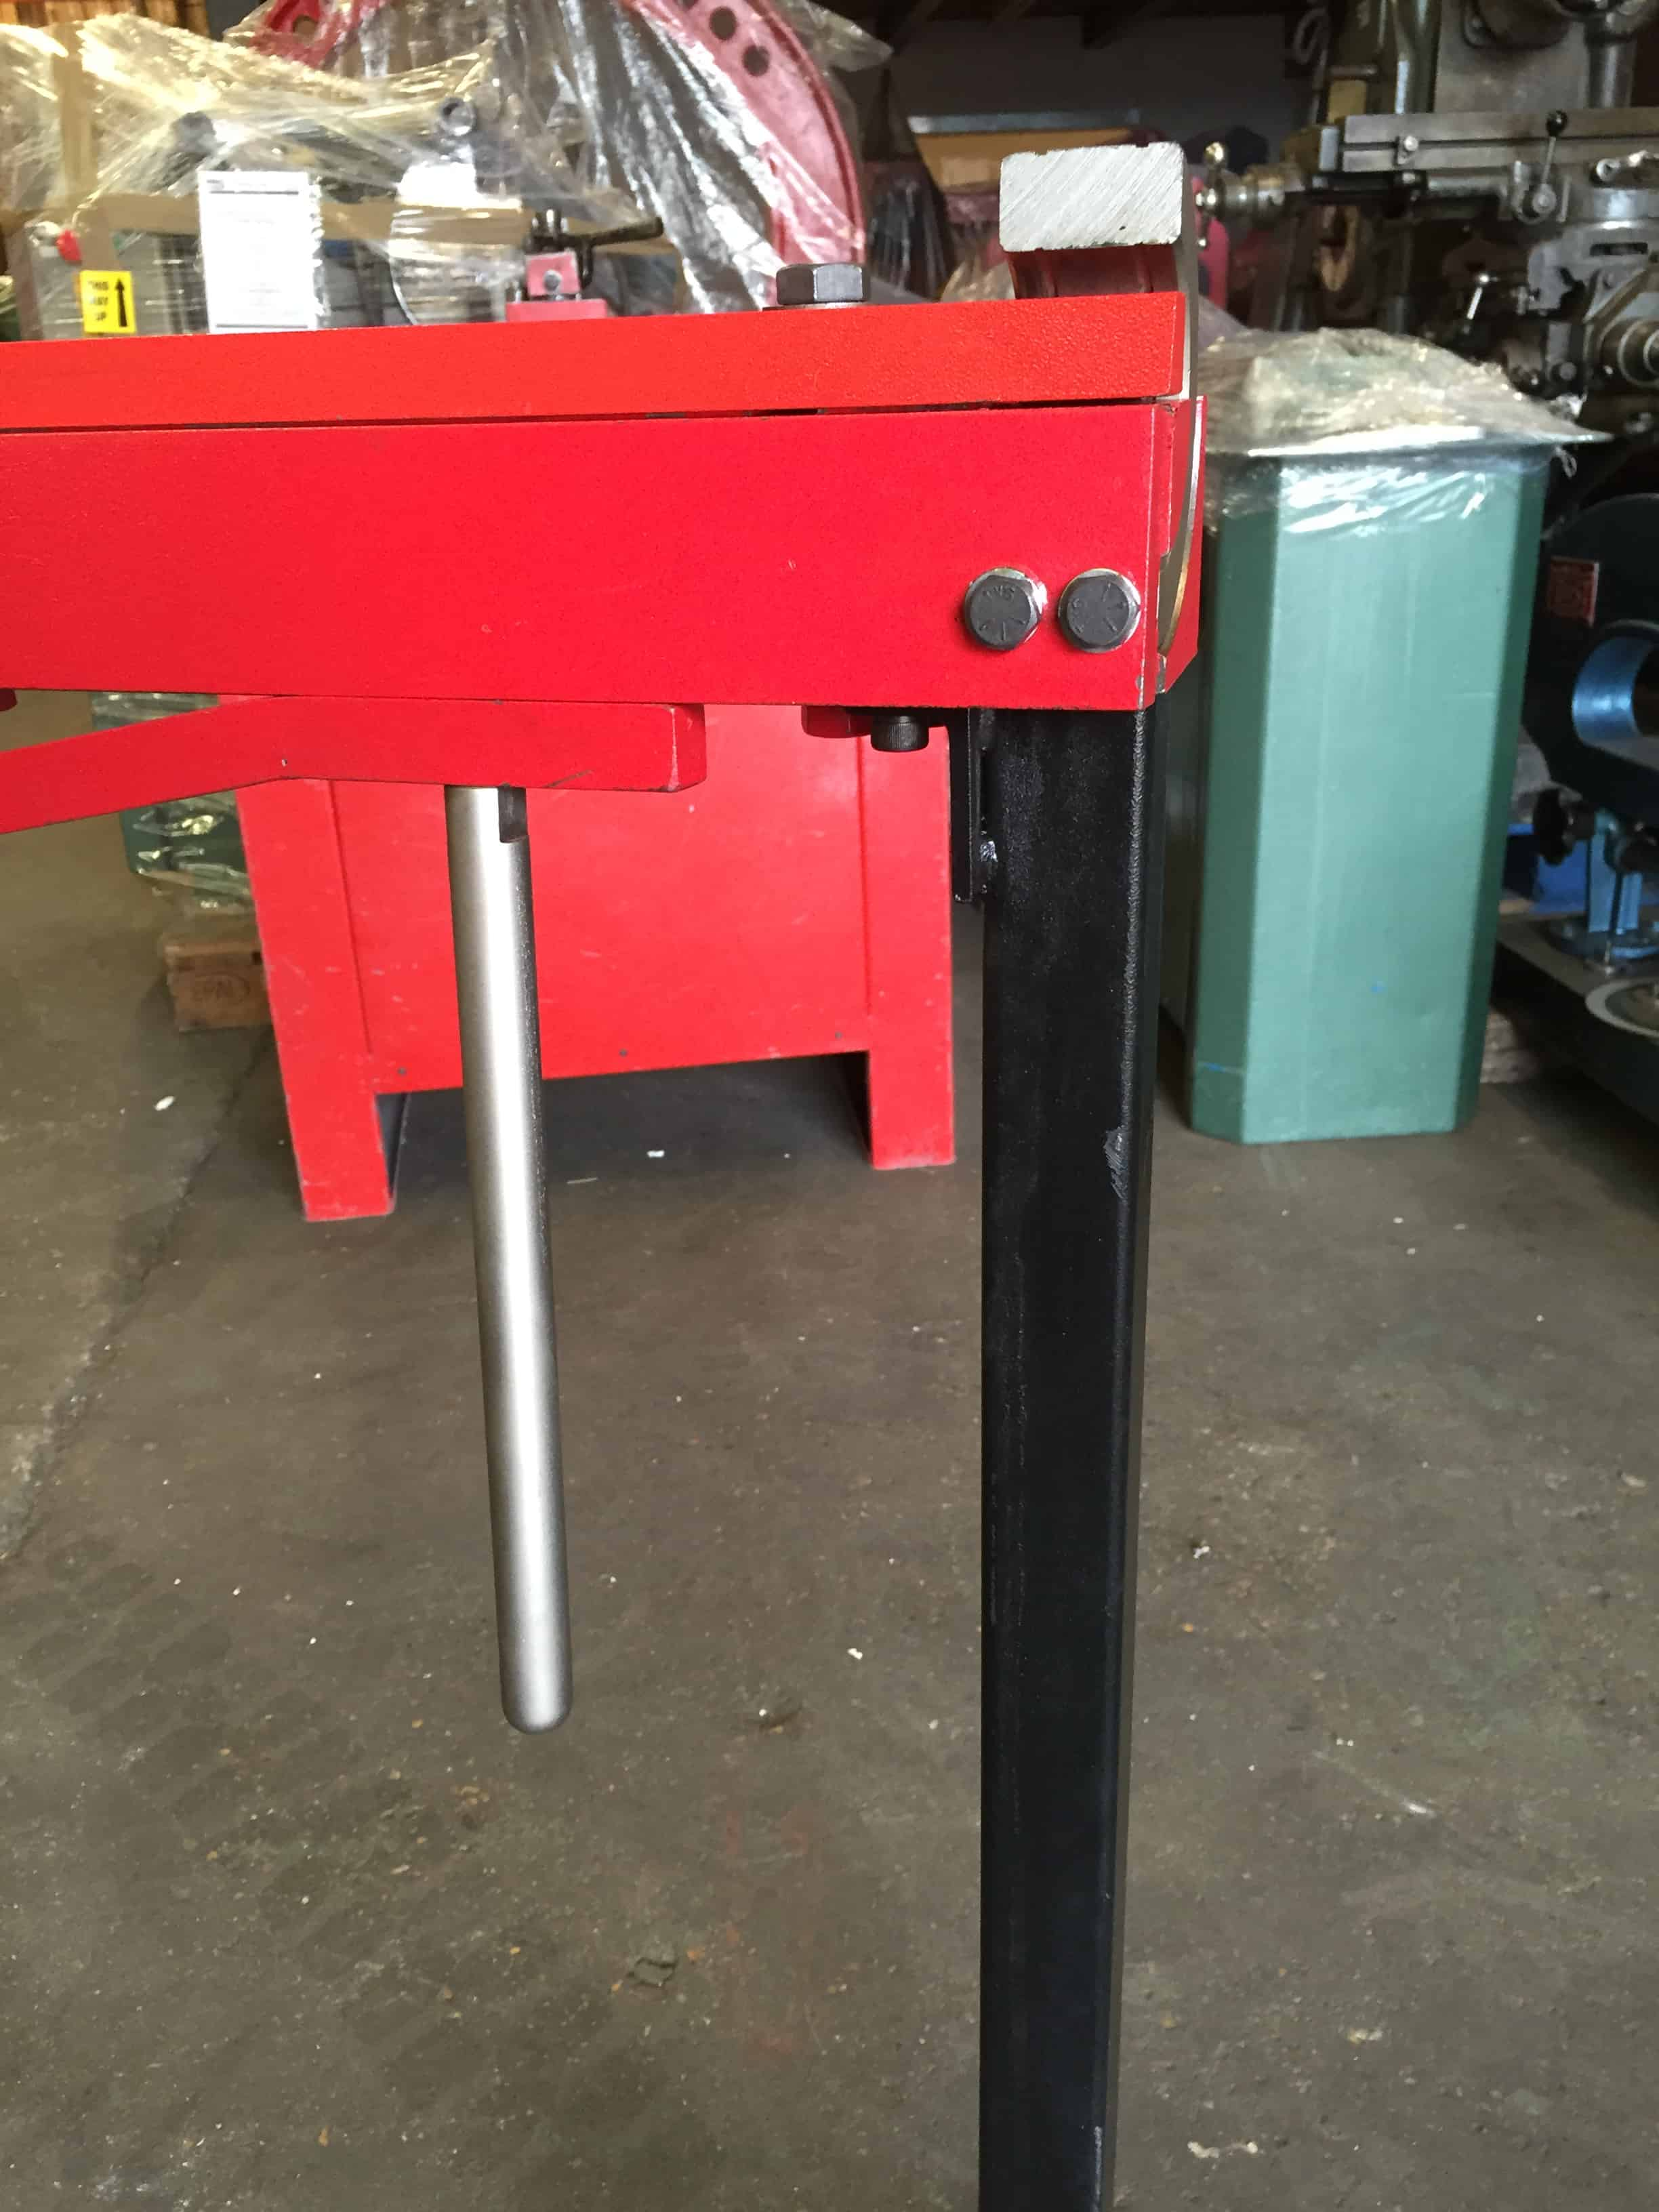 Wns 20swg 1 0mm Flange Folder Wns W Neal Services